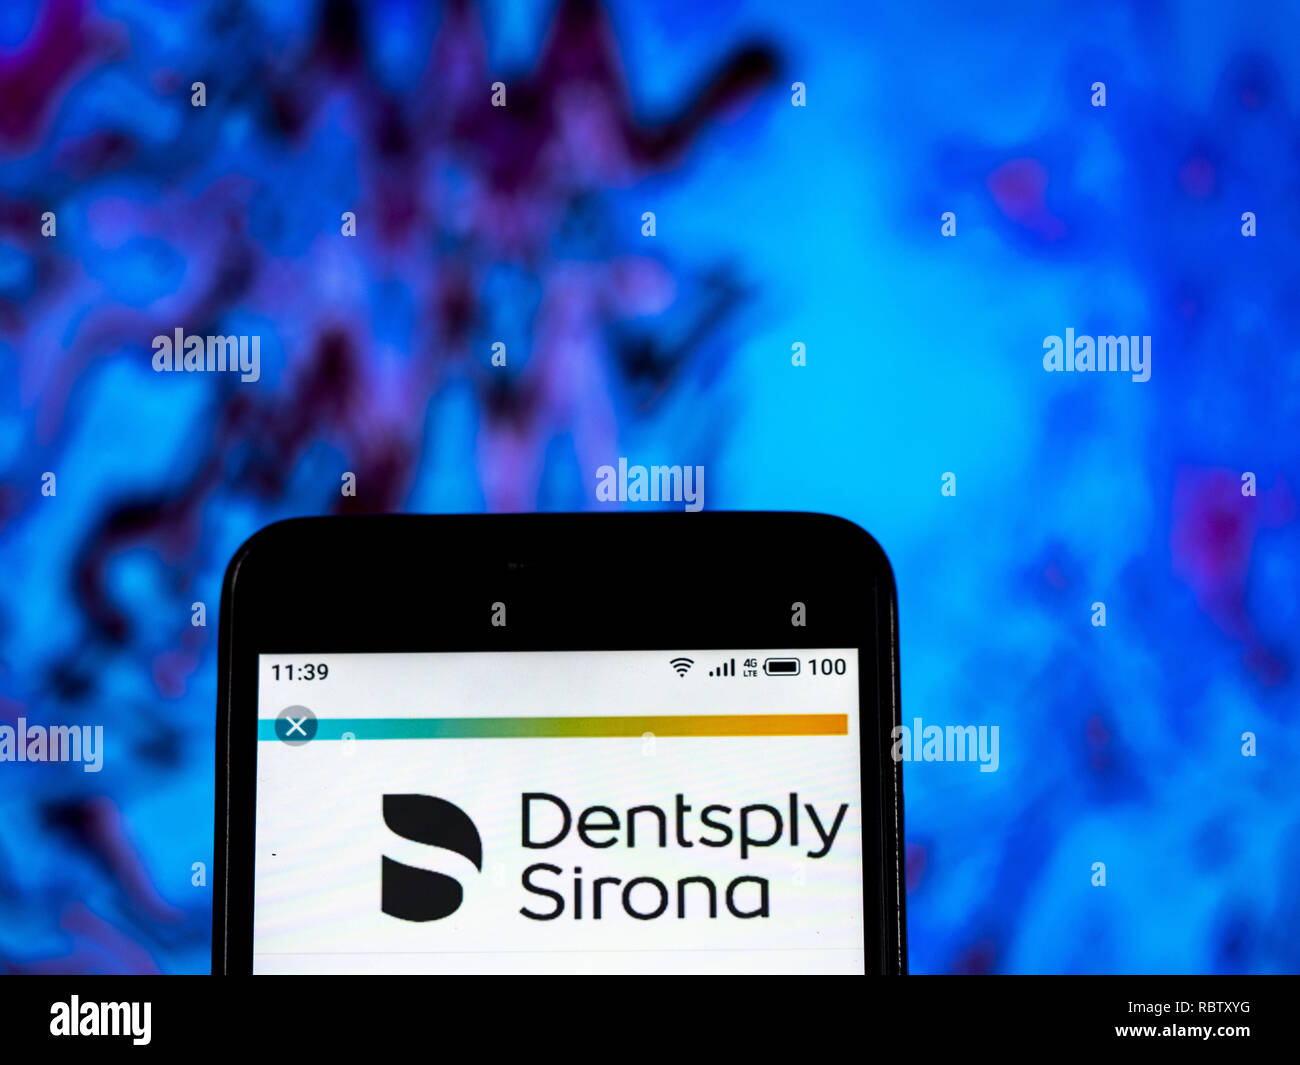 Dentsply Sirona Stock Photos Images Alamy X Y G Wiring Diagram January 11 2019 Kiev Ukraine Dental Equipment And Supplies Manufacturing